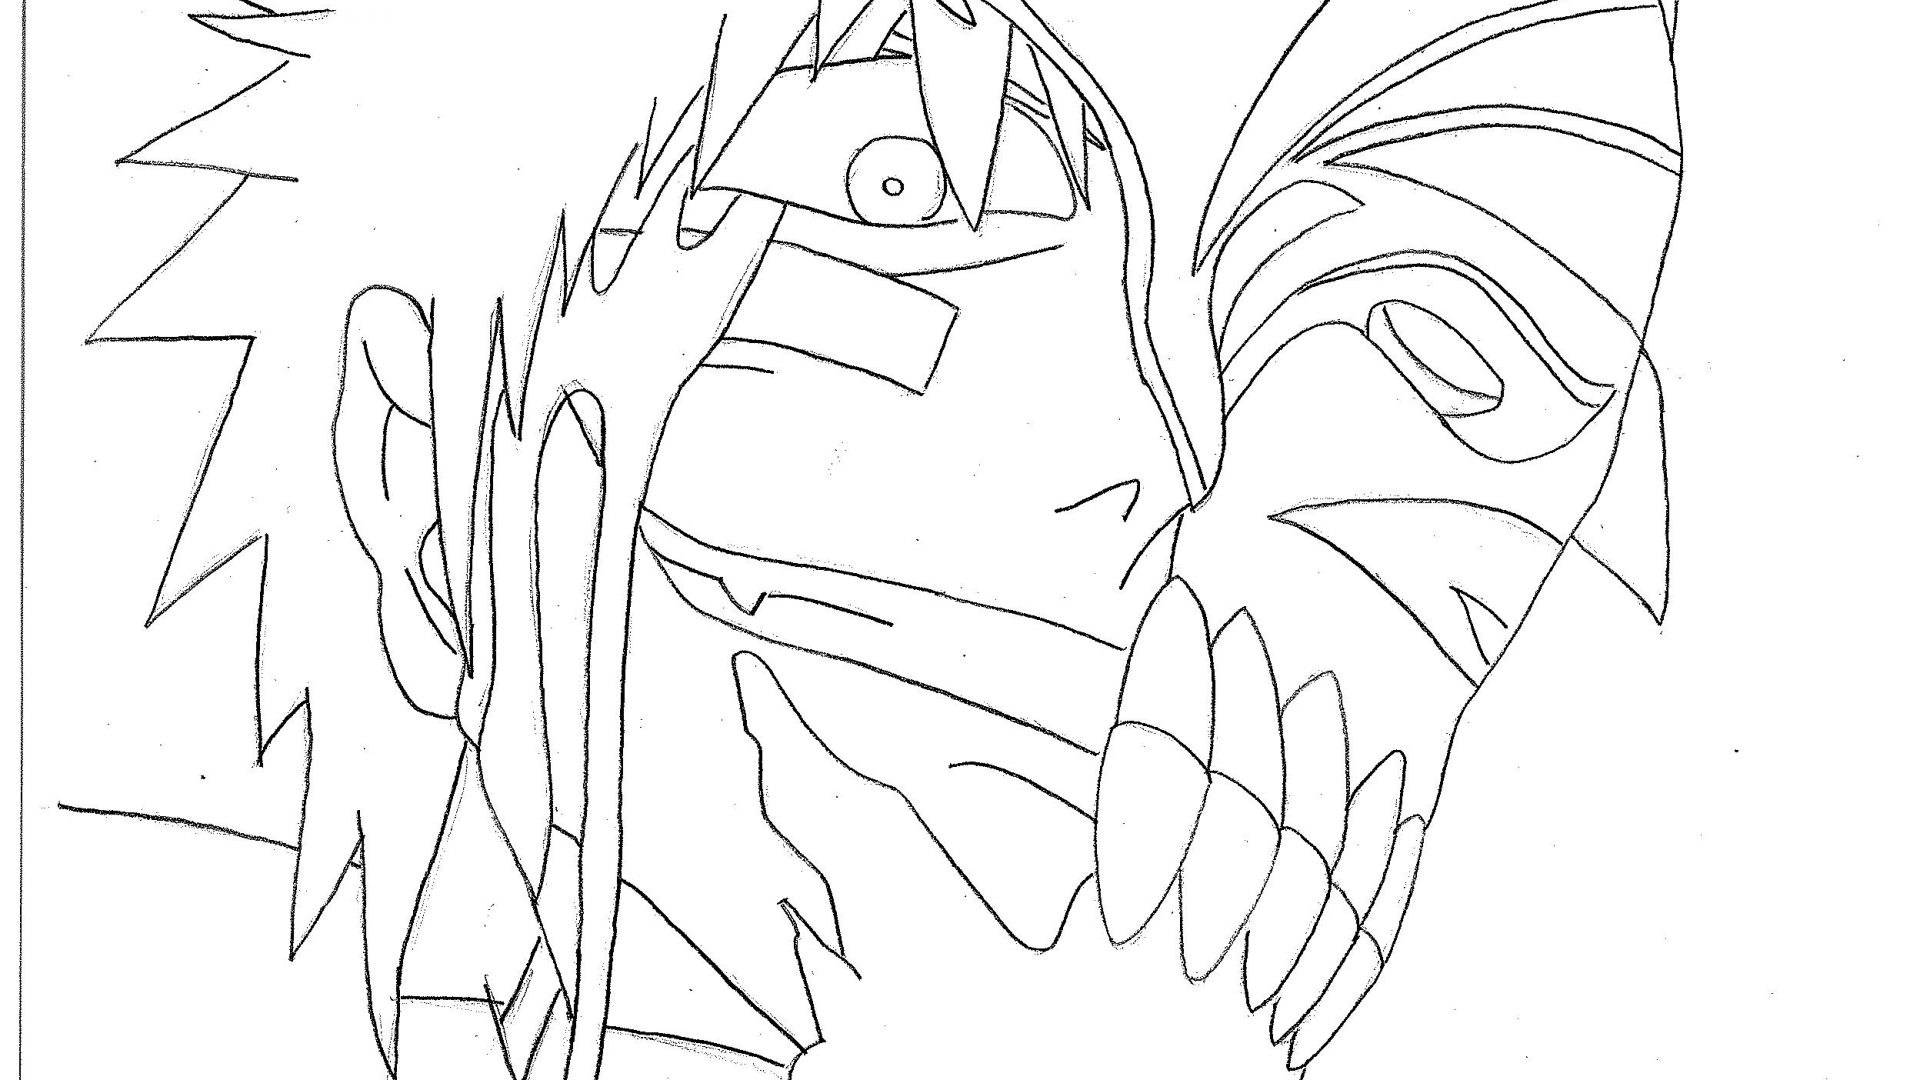 1920x1080 Bleach Anime Coloring Pages Download Coloring For Kids